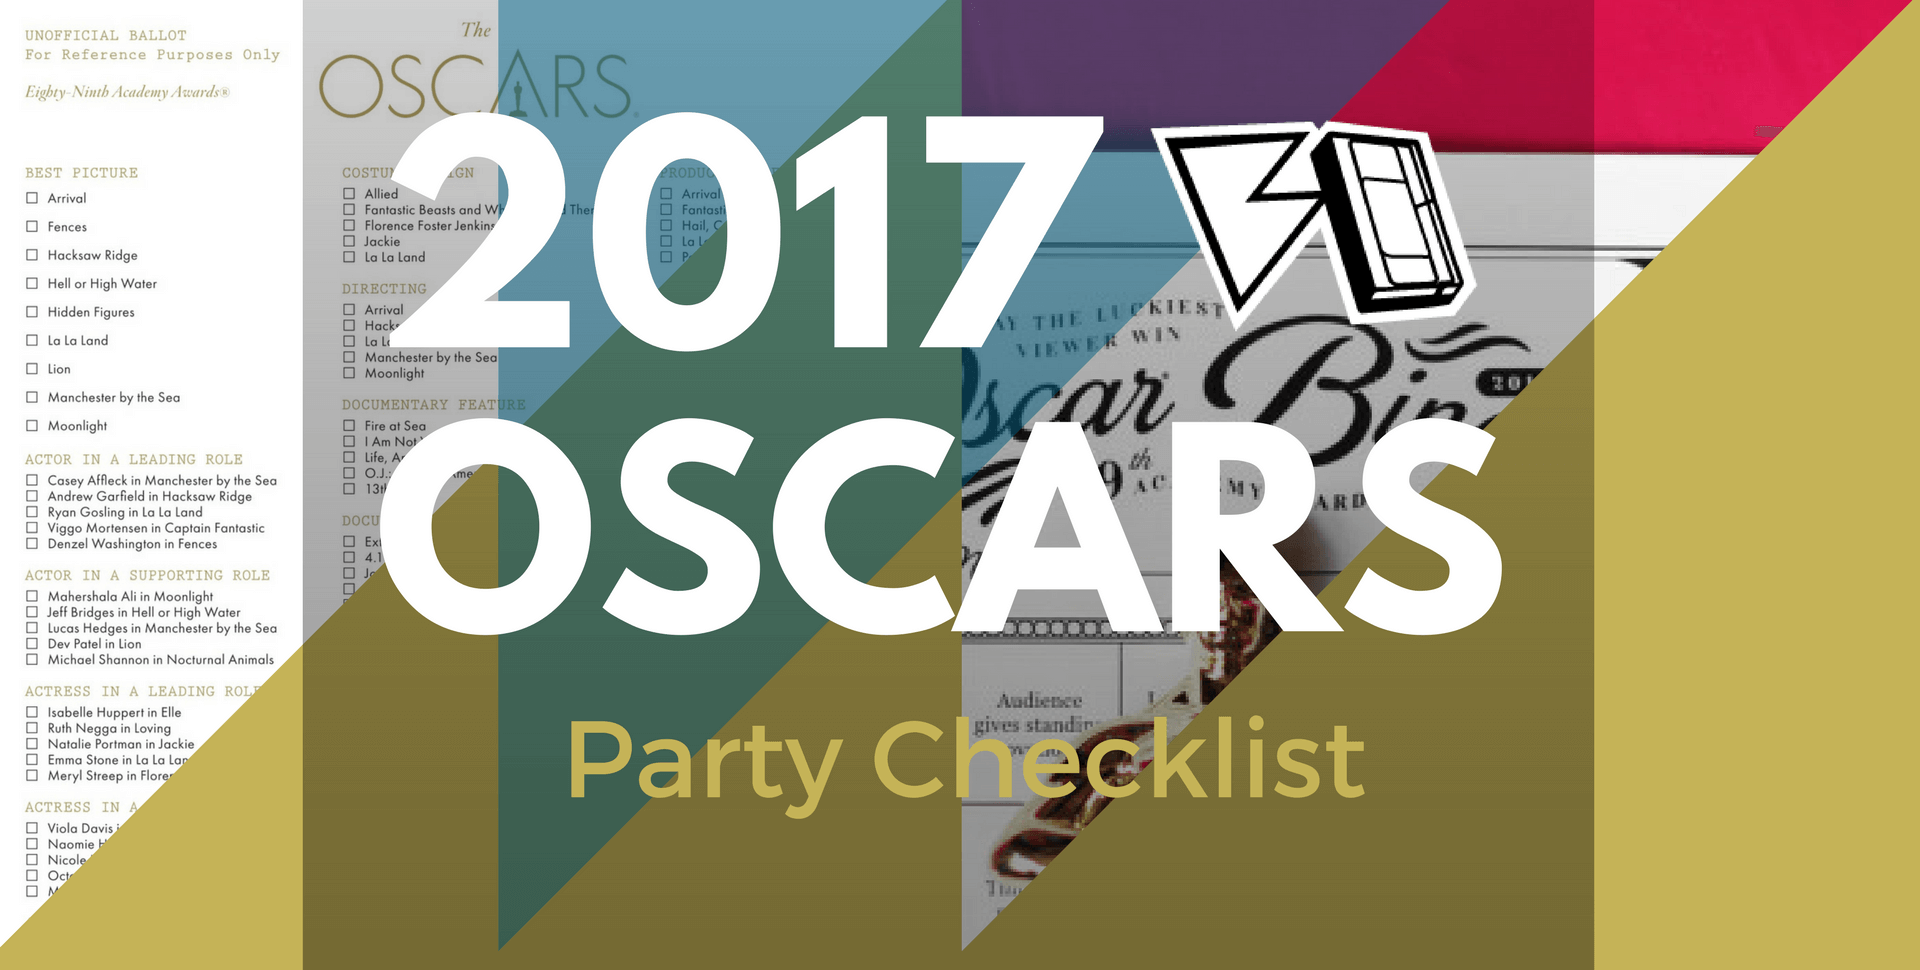 Party Checklist for 89th Academy Awards 2017